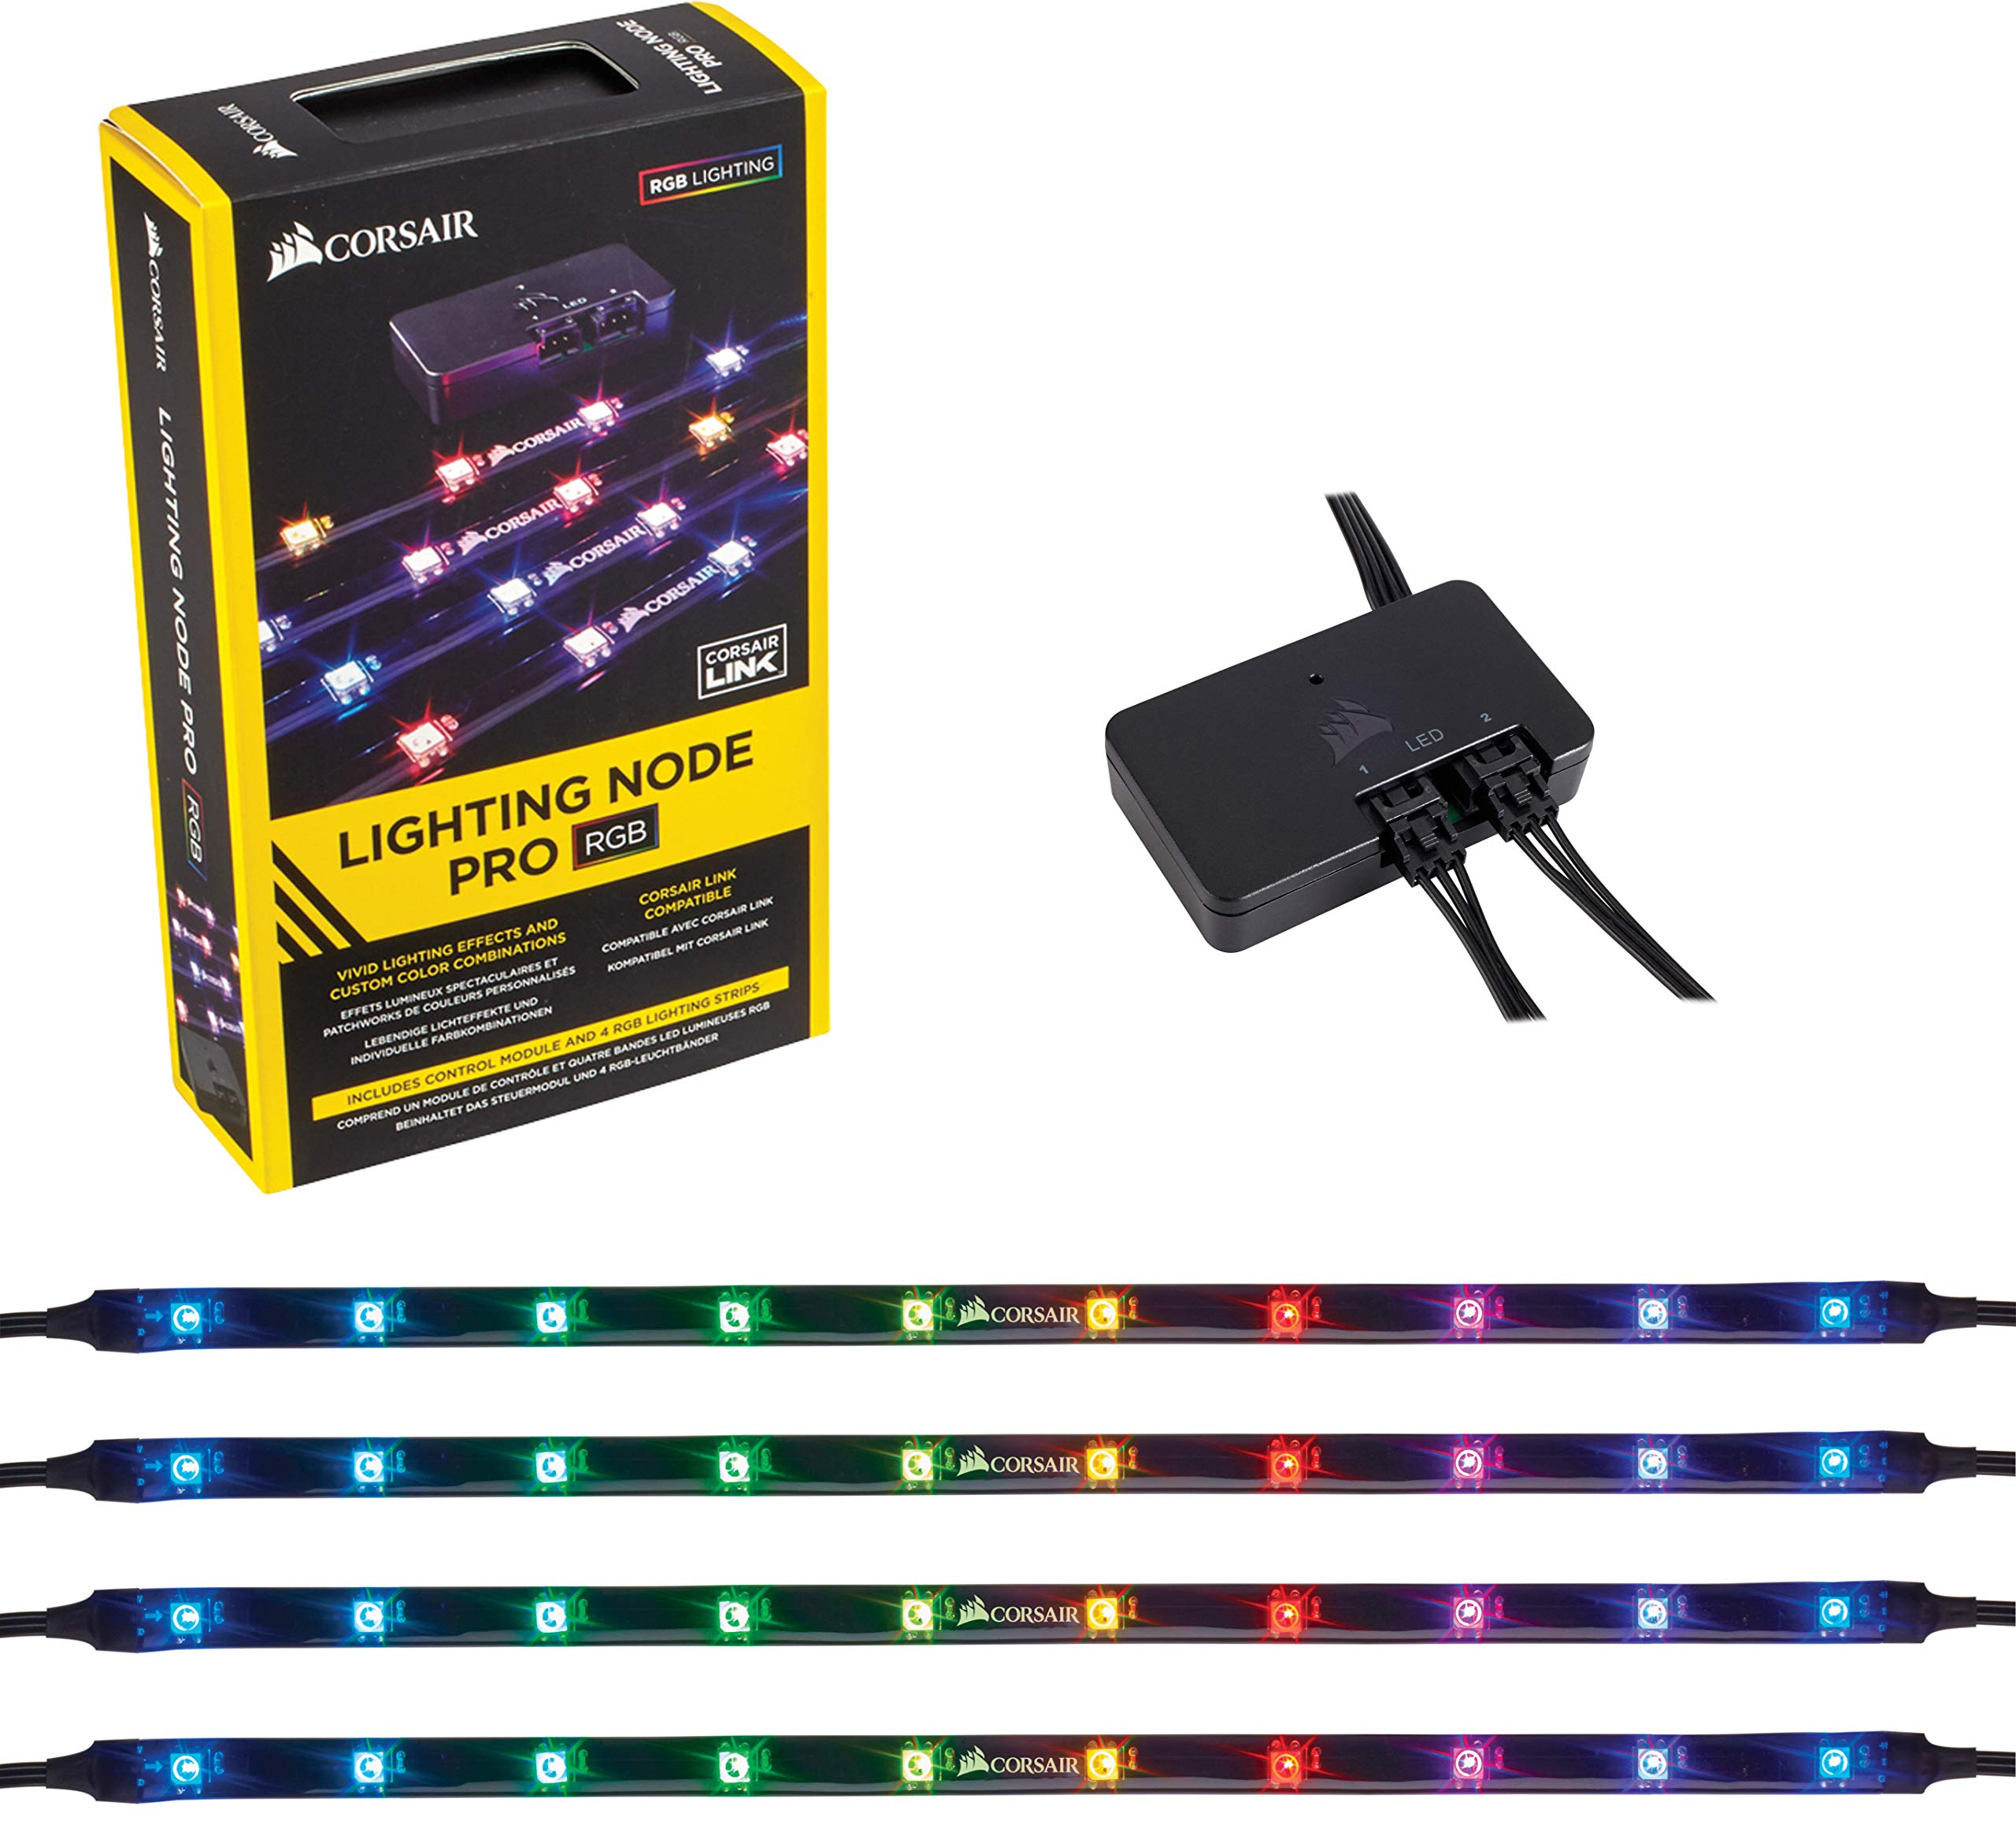 CORSAIR iCUE Commander PRO Smart RGB Lighting and Fan Speed Controller with RGB LED Lighting PRO Expansion Kit by Corsair (Image #2)